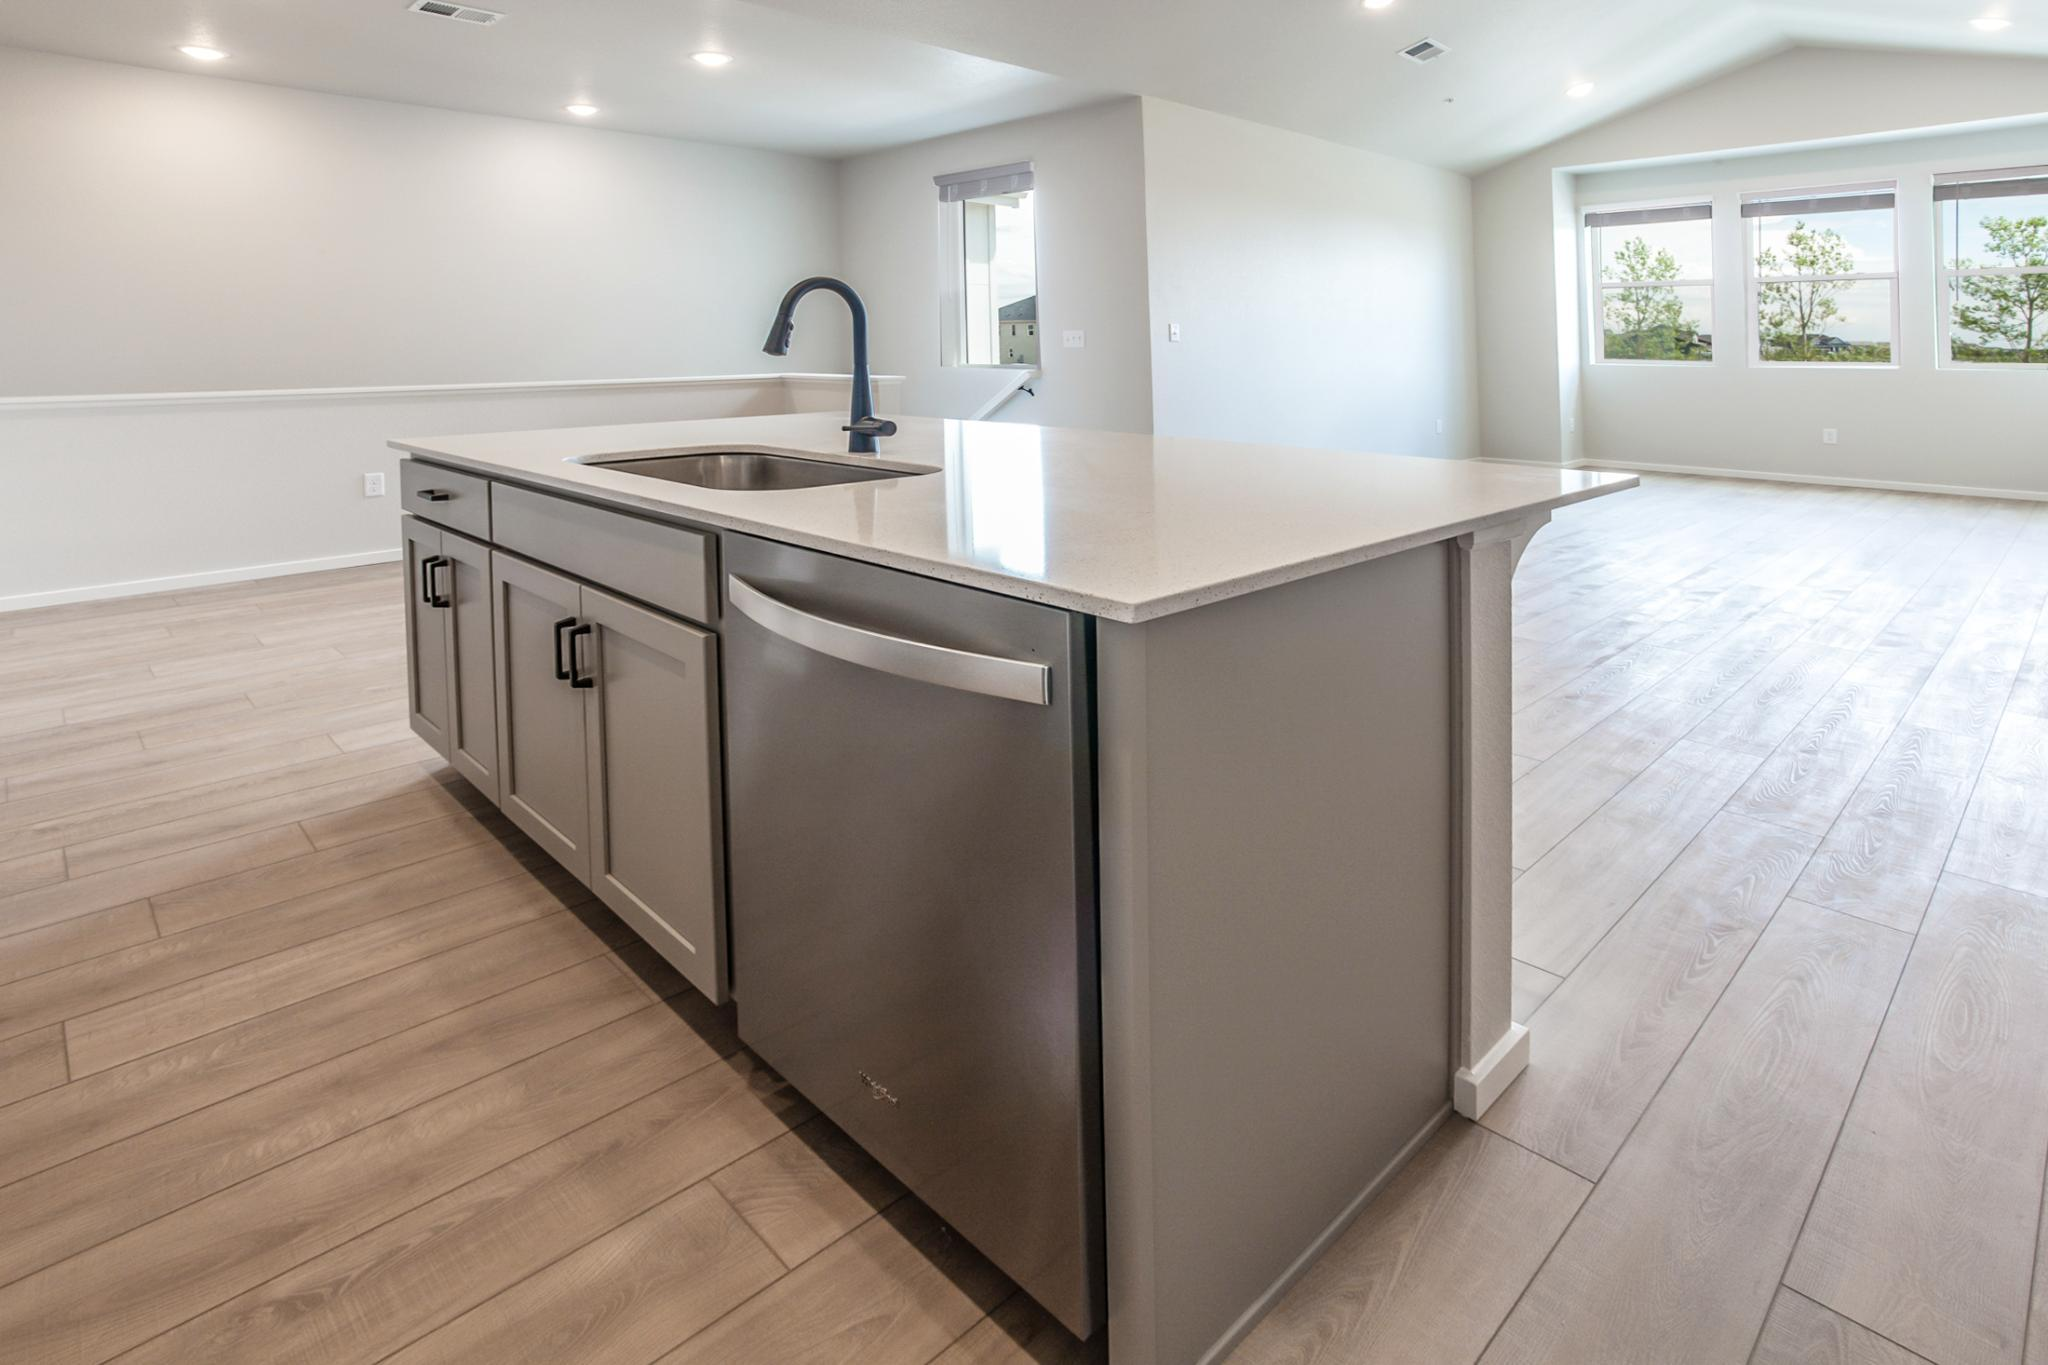 Kitchen featured in the Vanderbilt By Hartford Homes in Greeley, CO